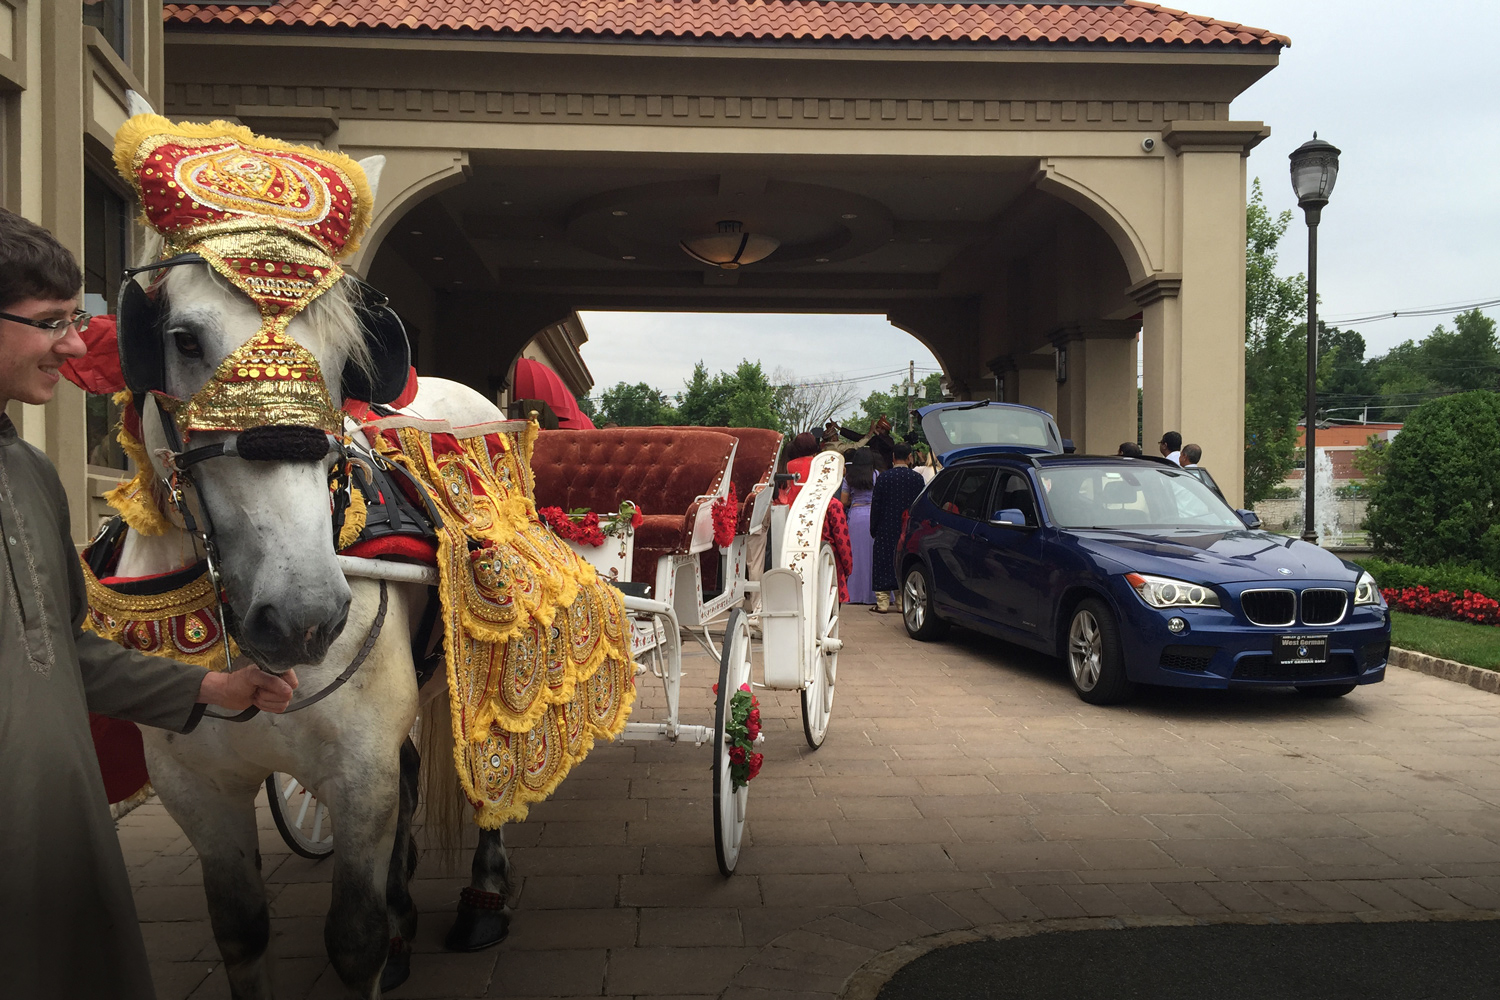 PICTURE PERFECT BARAAT